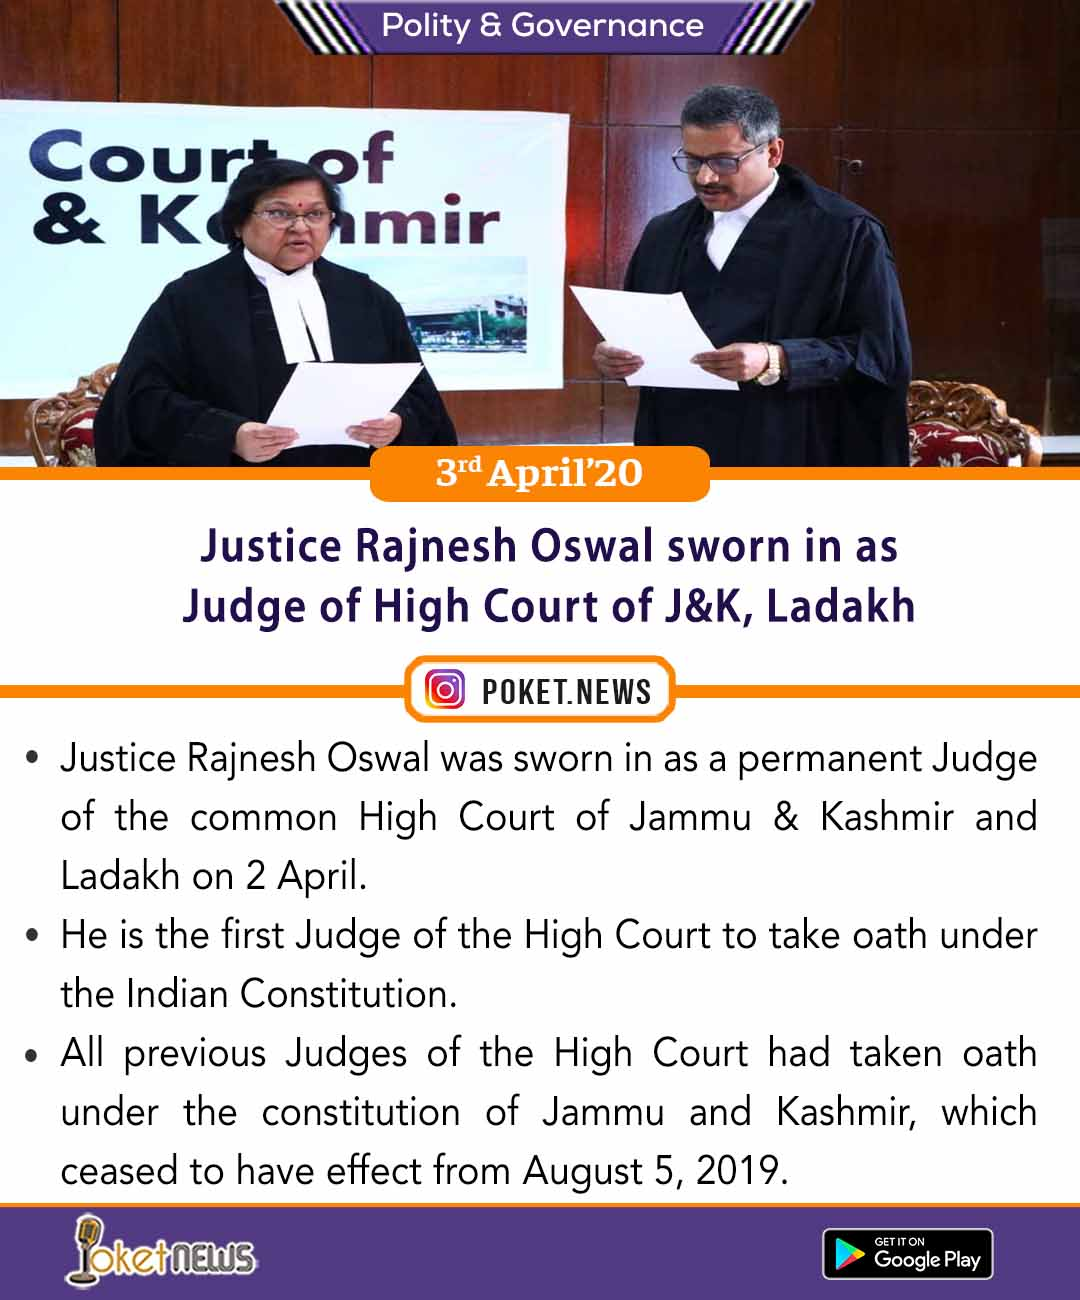 Justice Rajnesh Oswal sworn in as Judge of High Court of J&K, Ladakh